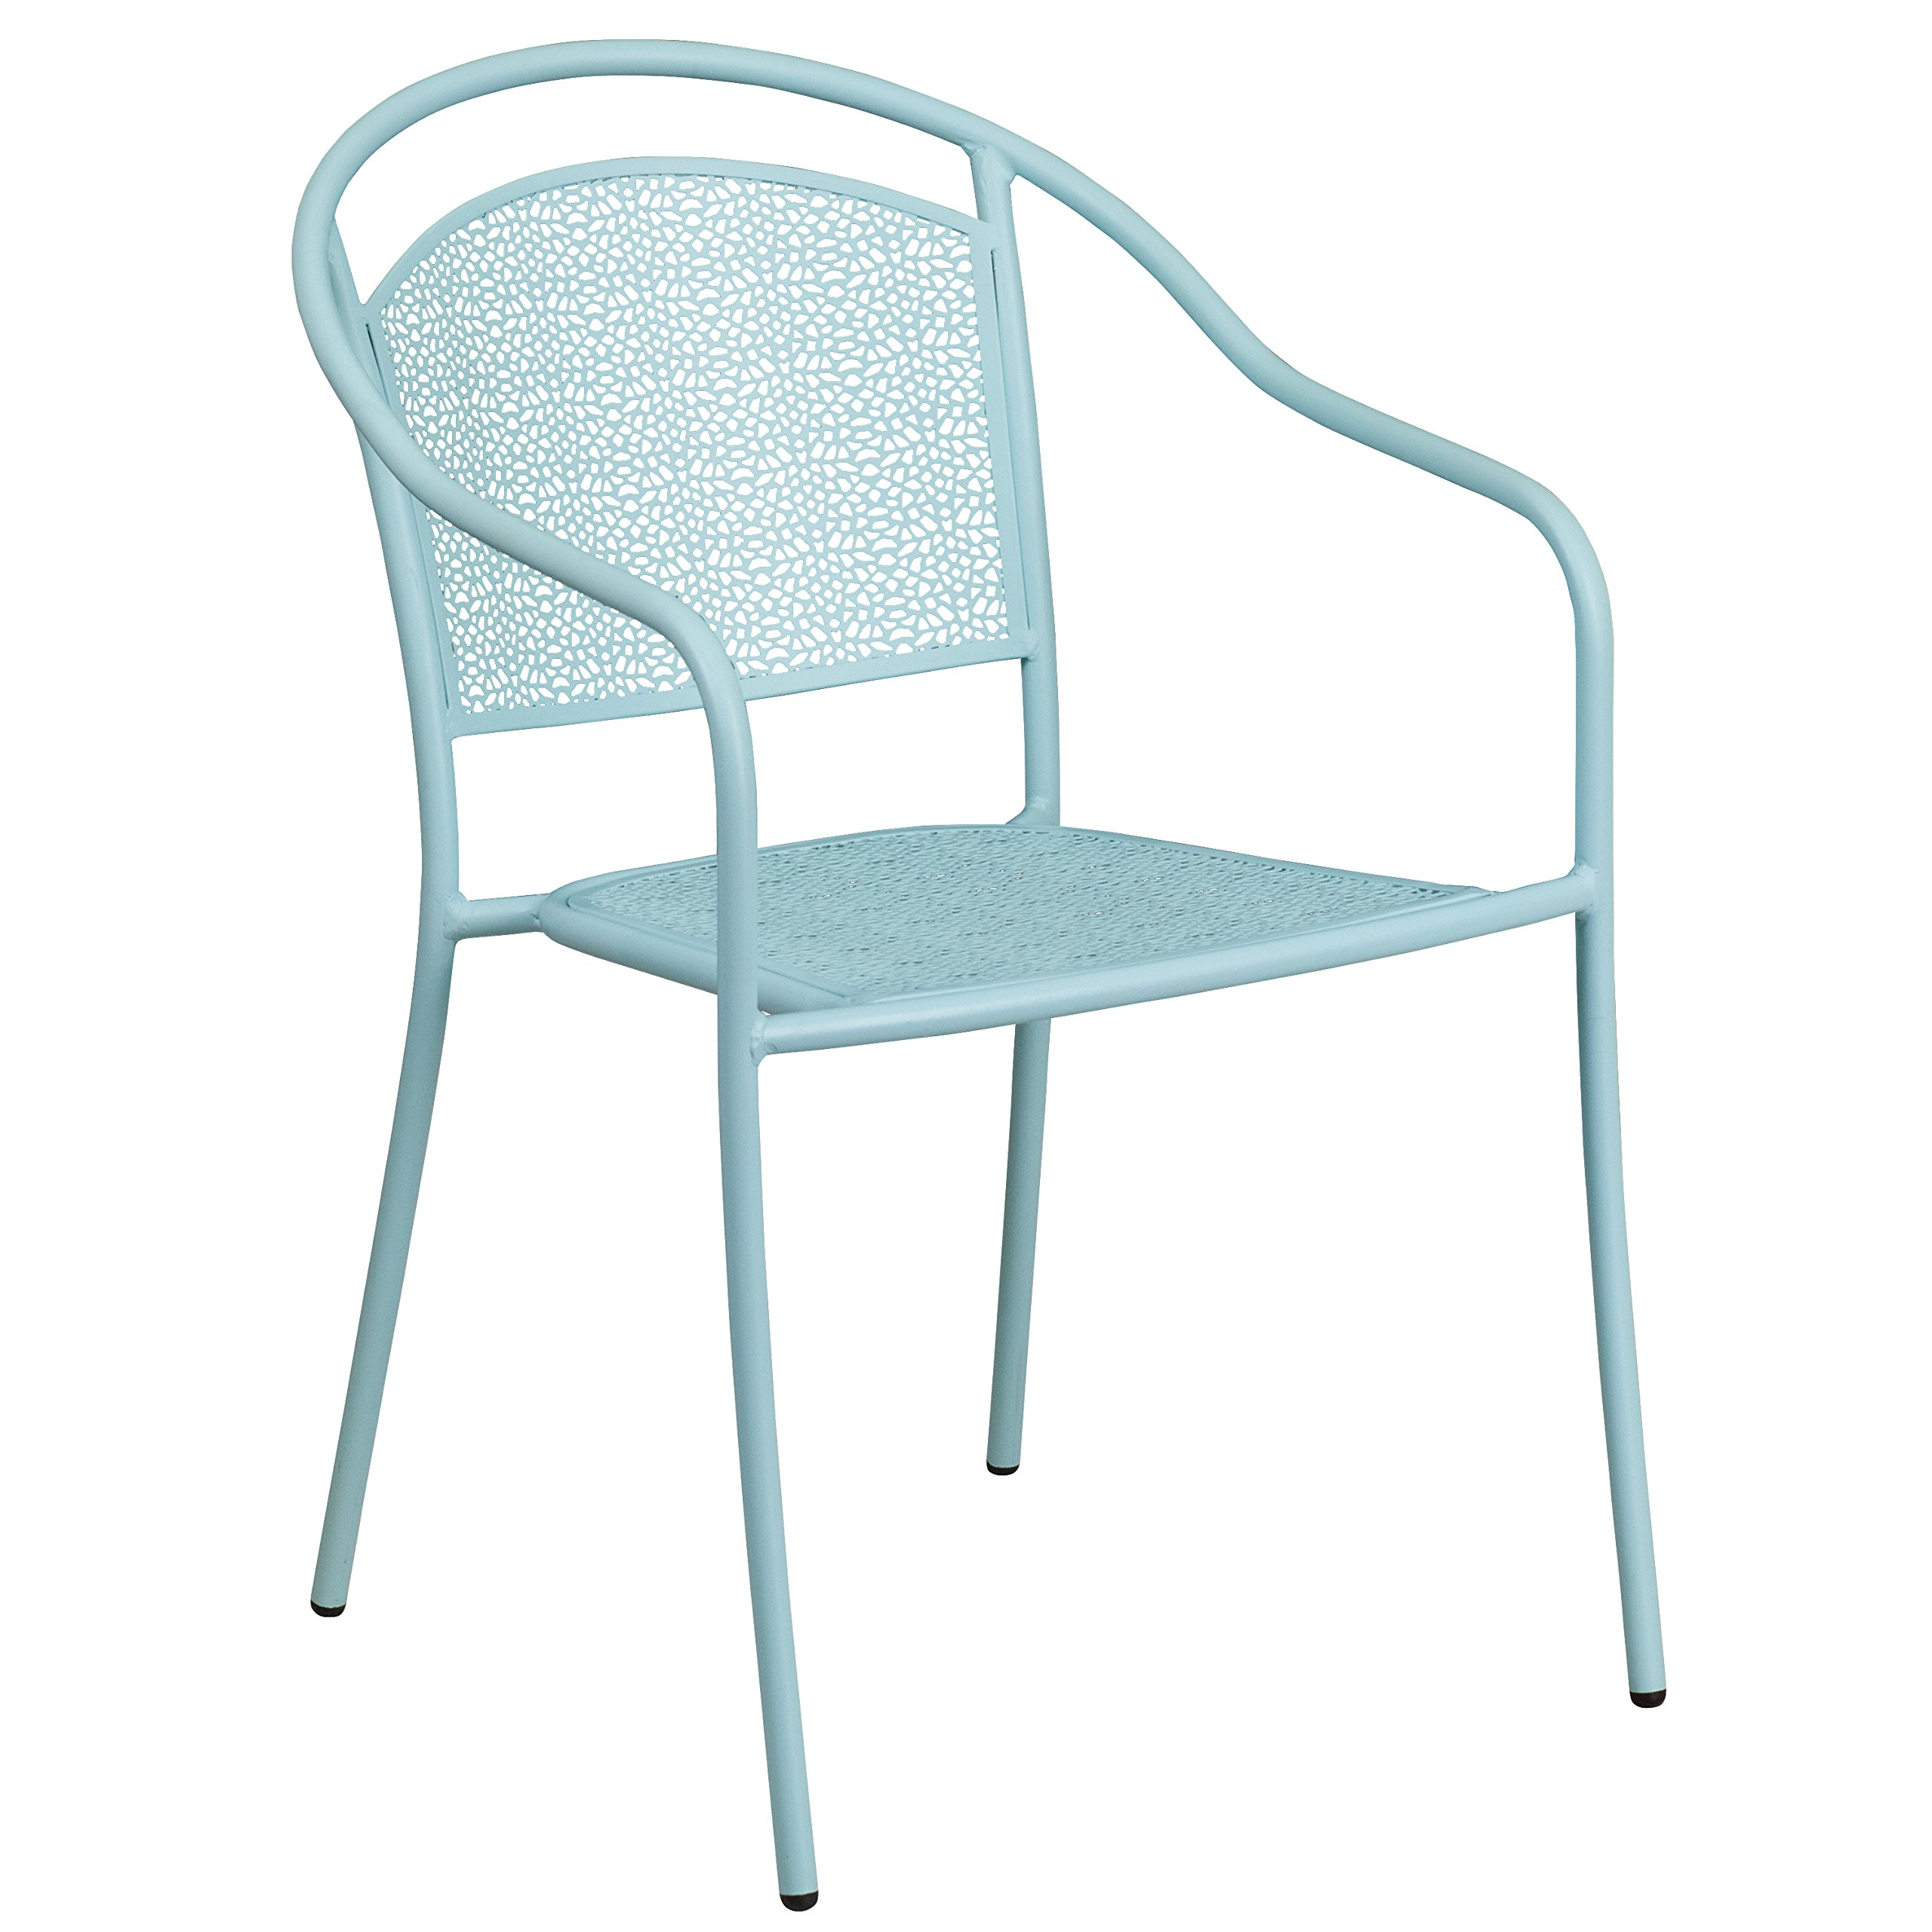 Flash Furniture CO-3-SKY-GG Metal Blue Round Back Patio Chair, 1 Pack, Sky